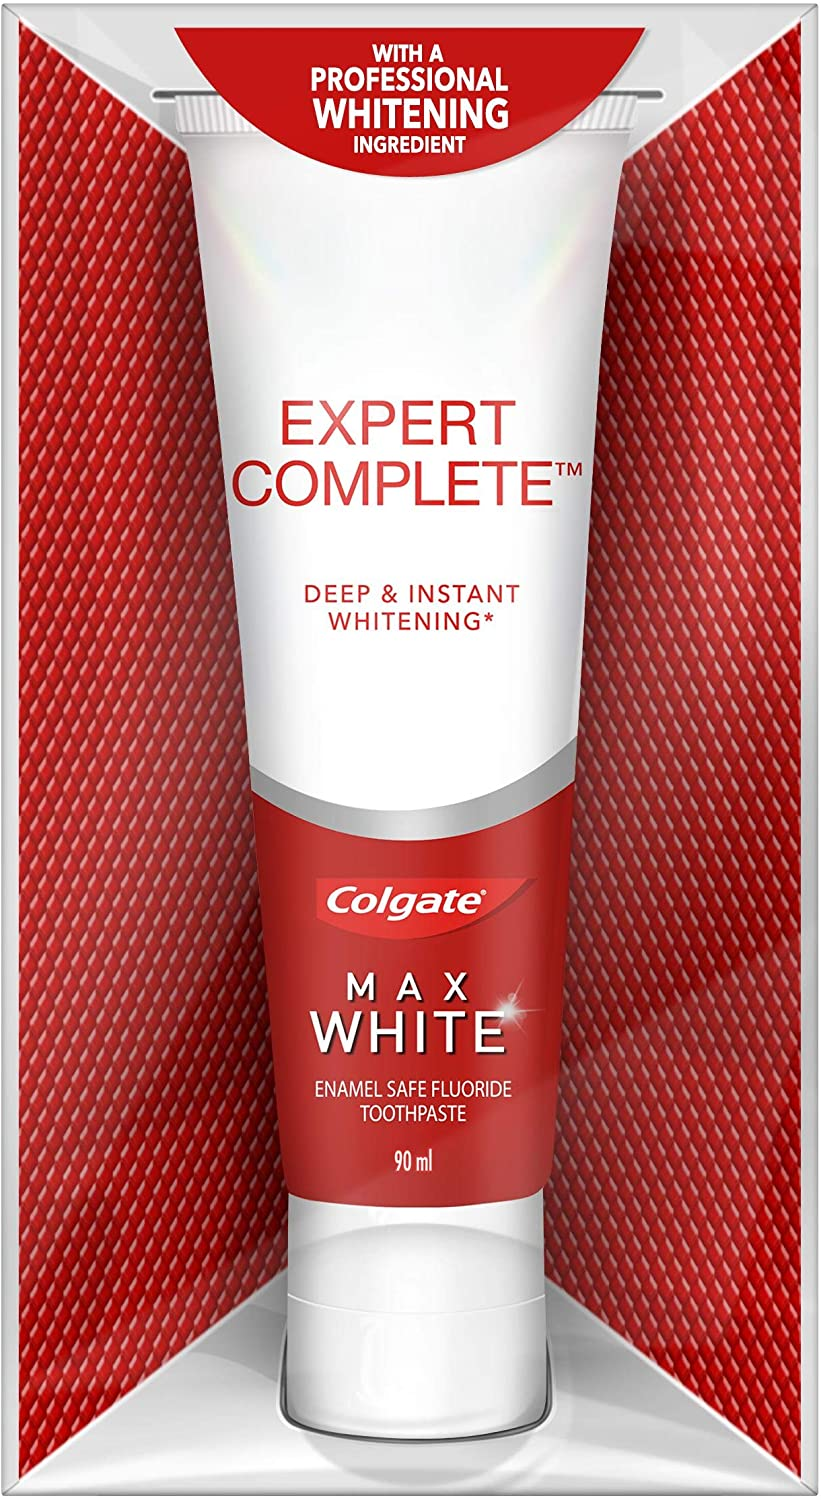 Colgate Max White Expert Complete Whitening Toothpaste